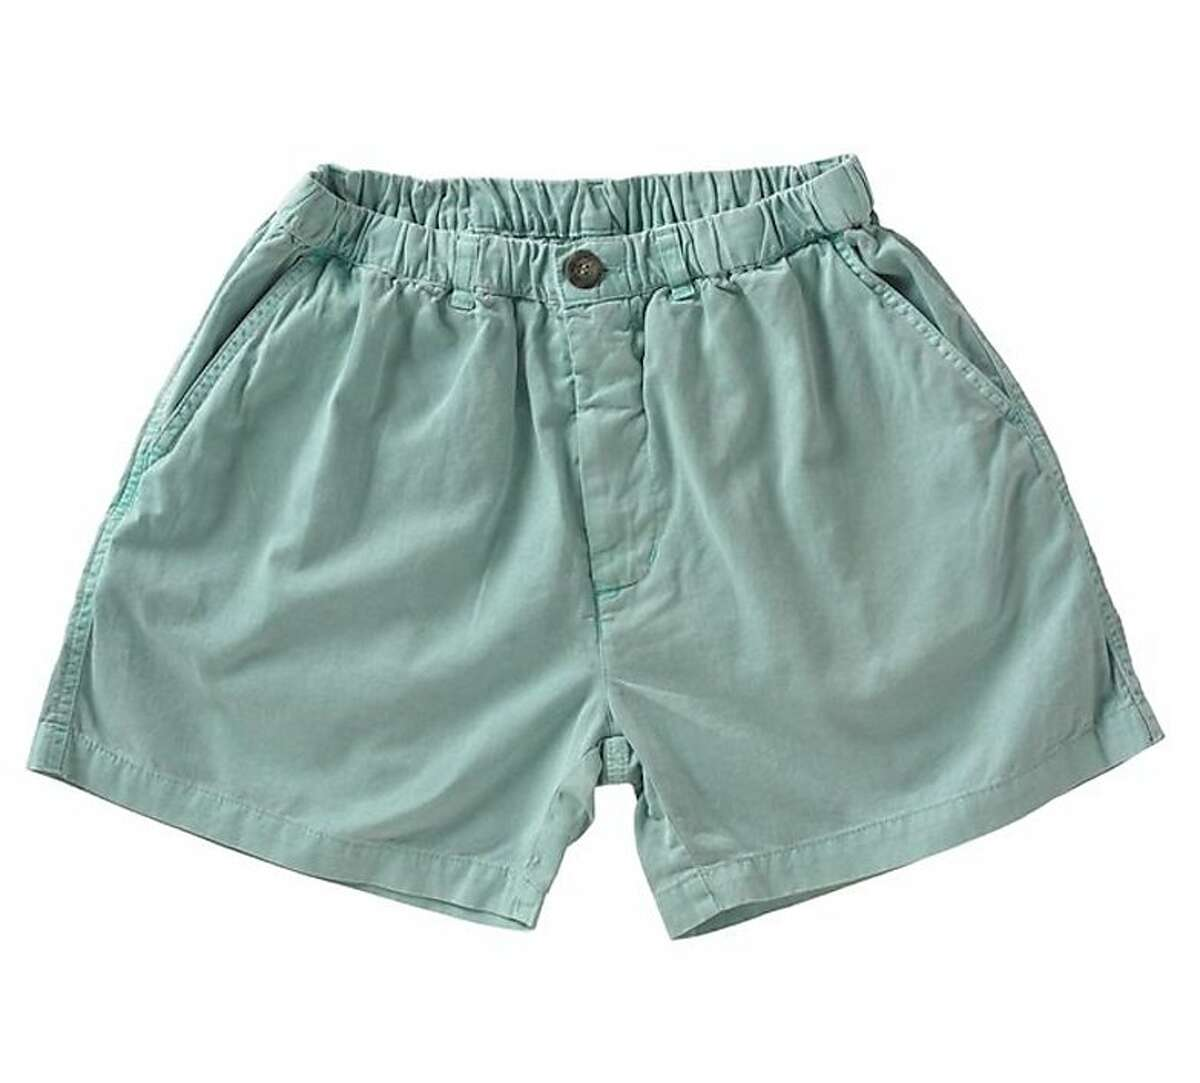 Chubbies, a Potrero Hill shorts company, has been making (and selling out of) its bro-tastic Americana short-shorts, with loyal fans nationally and abroad.